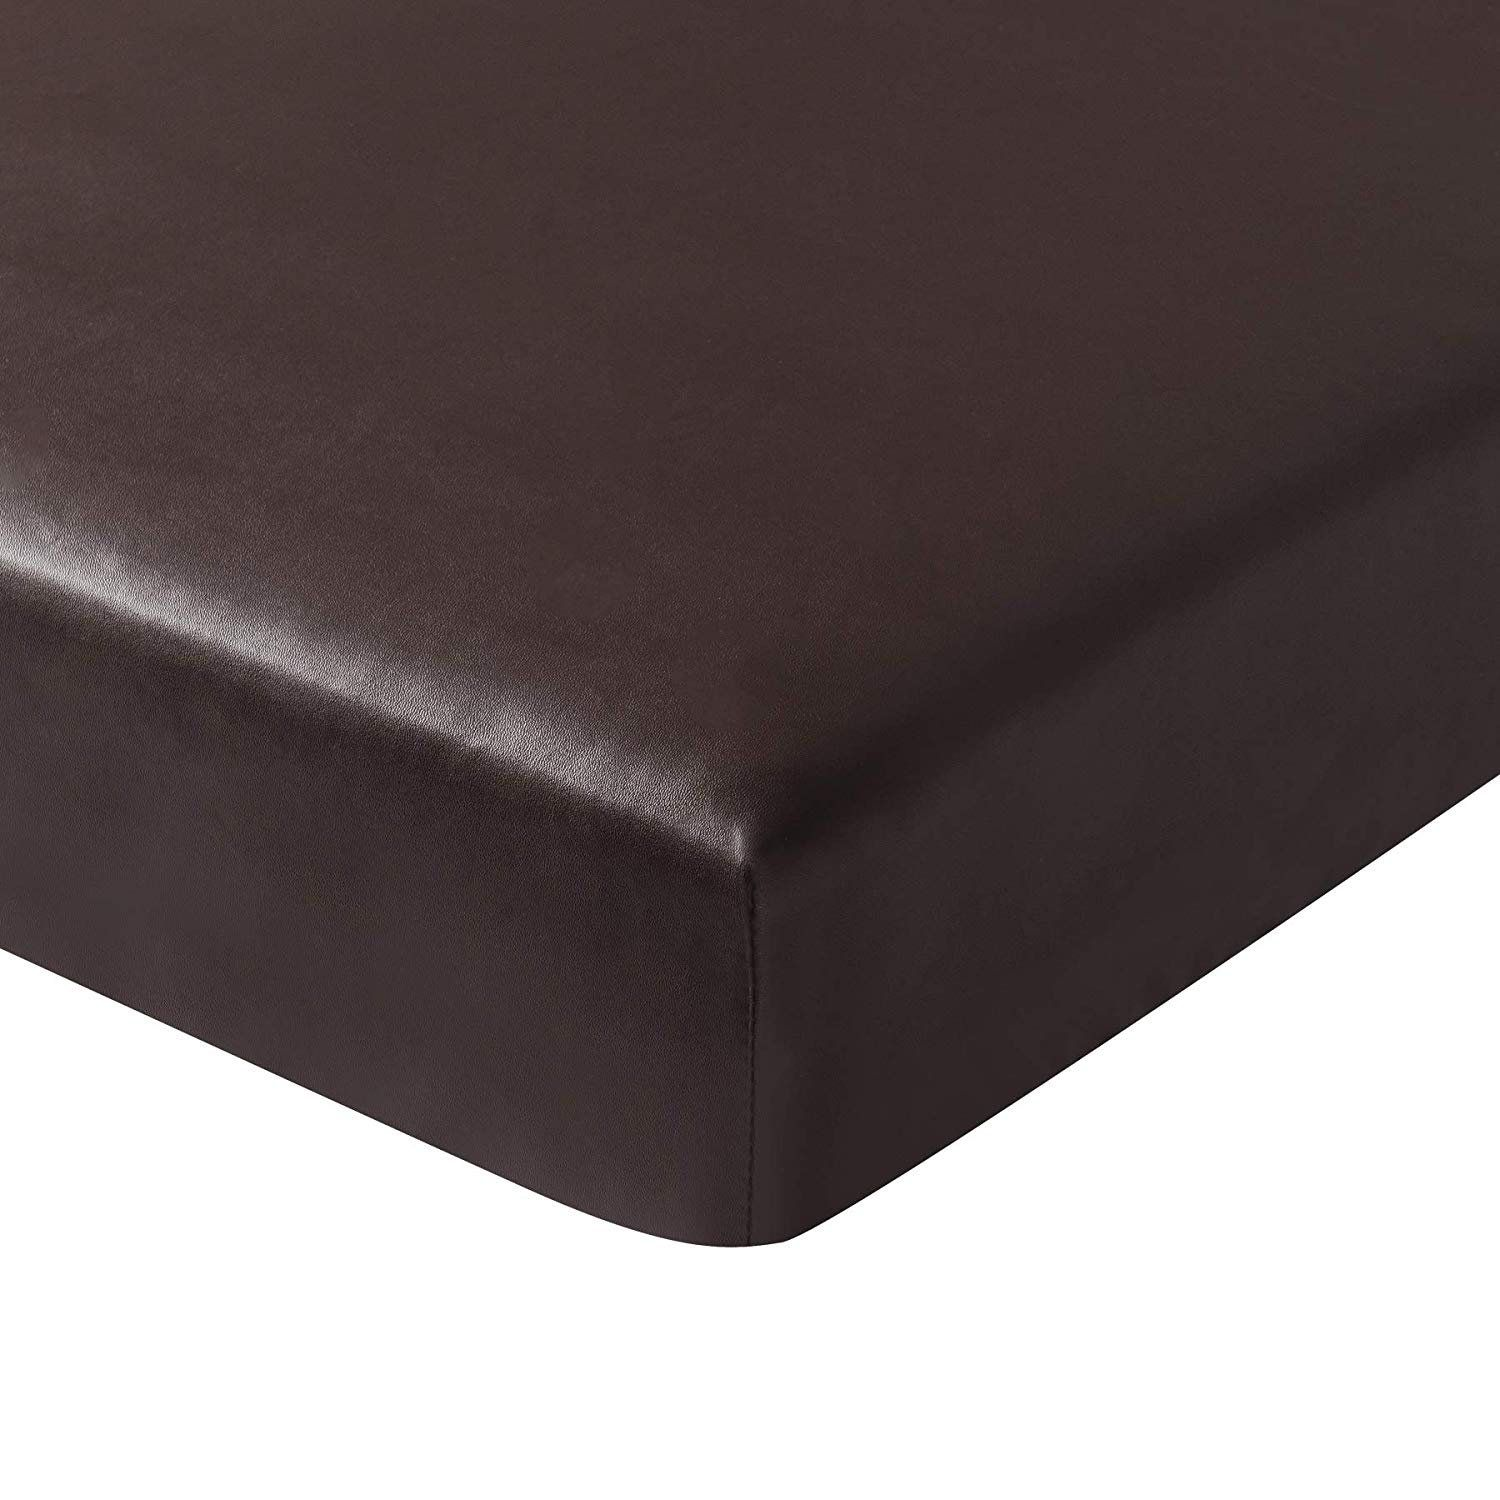 Stretchy Replacement Sofa Seat Covers PU Leather Cushion Cover Protector Couch